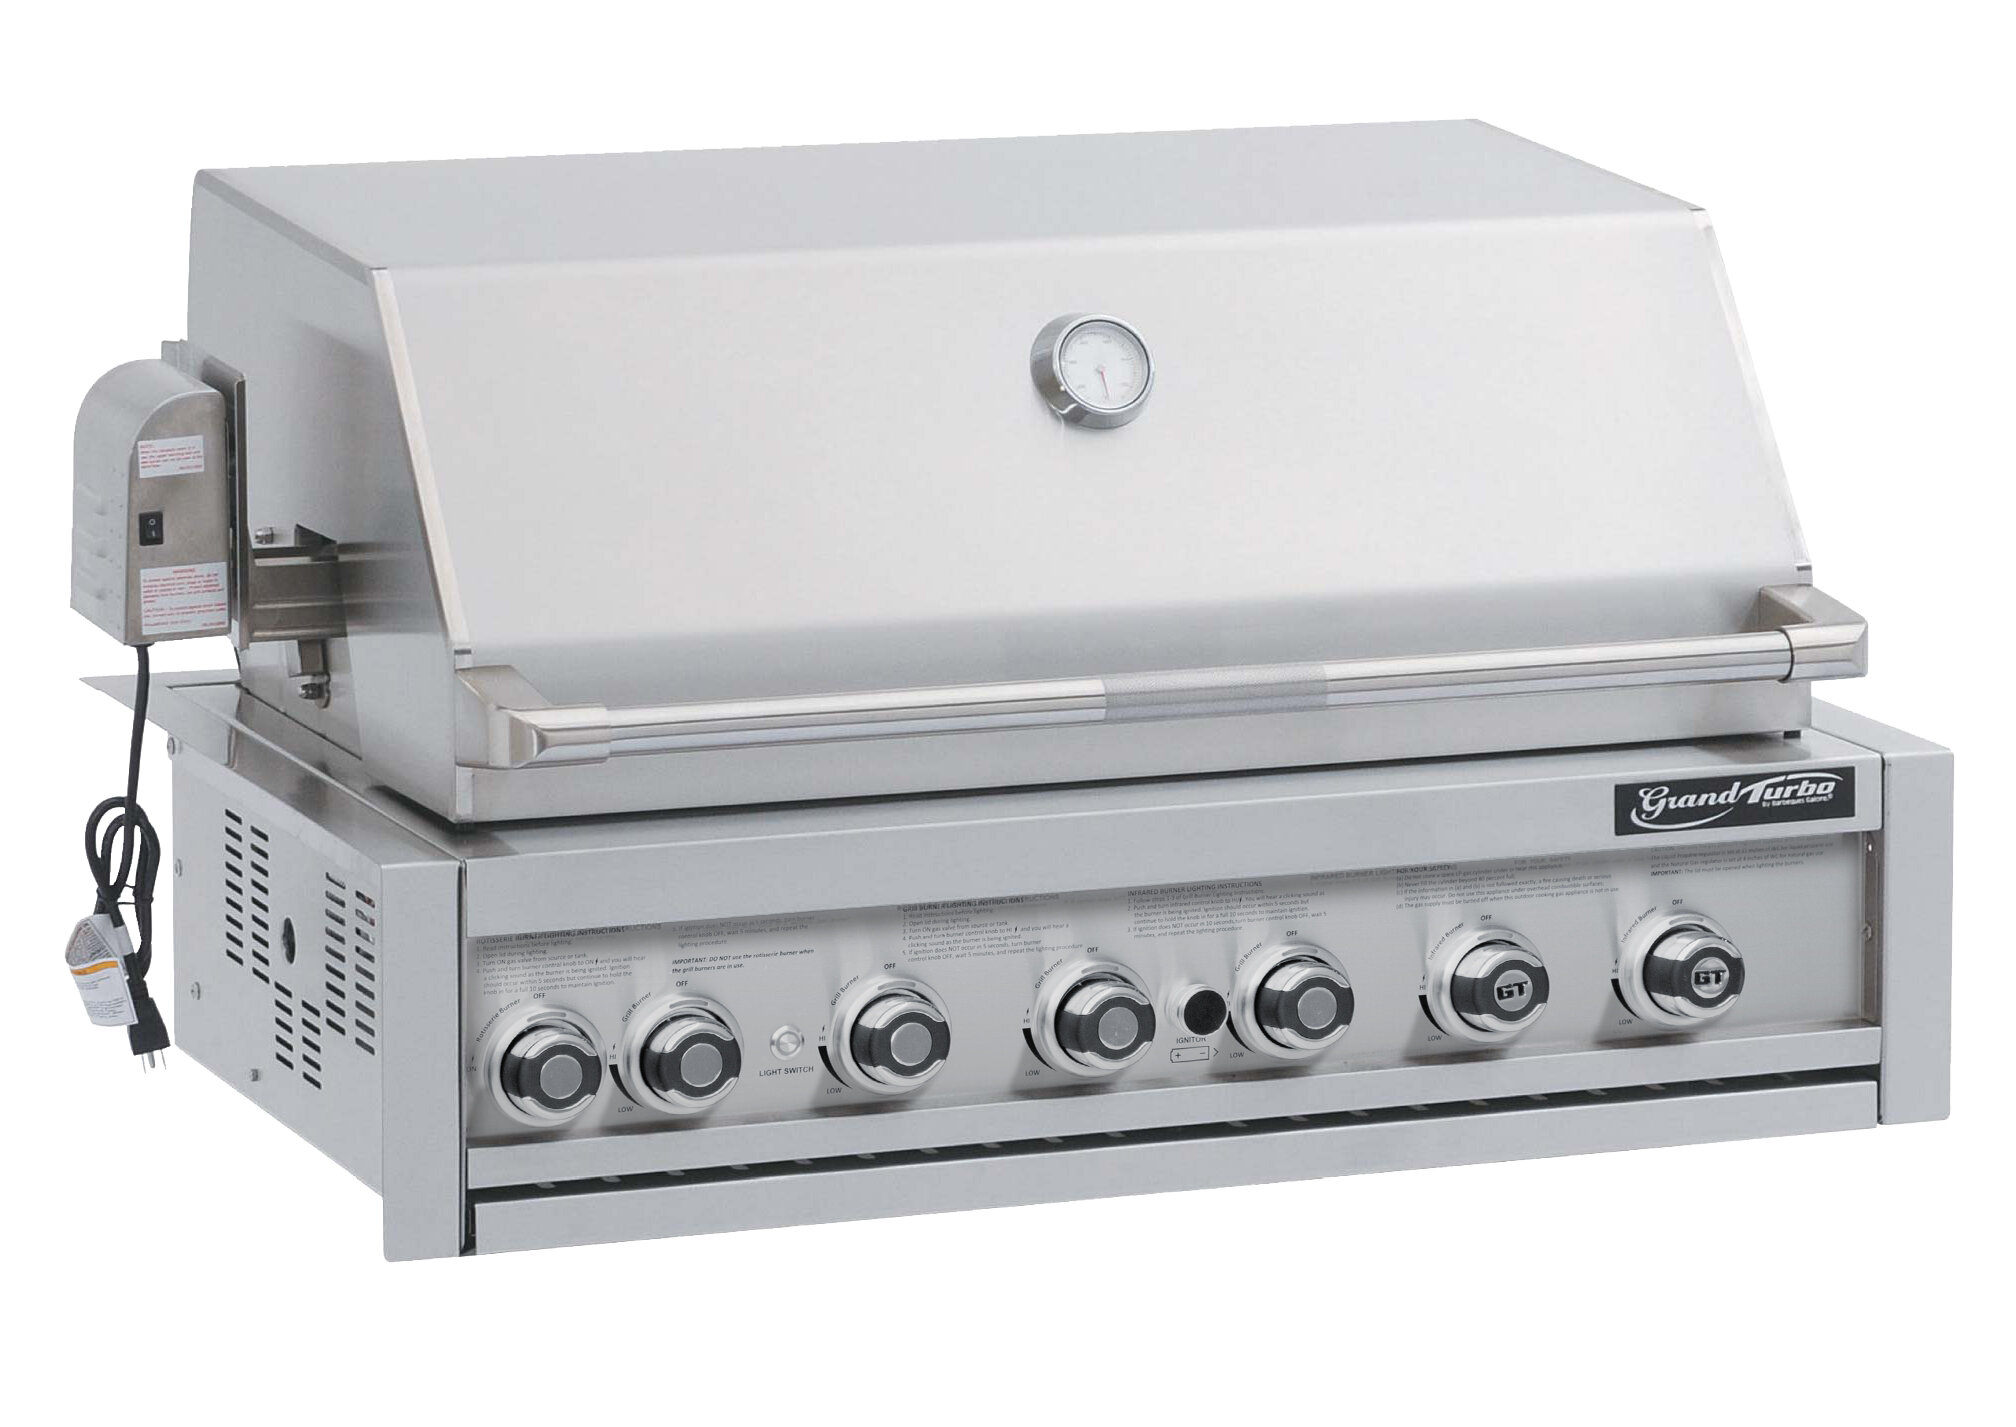 Barbeques Galore Grand Turbo 7 Burner Built In Natural Convertible Gas Grill Wayfair